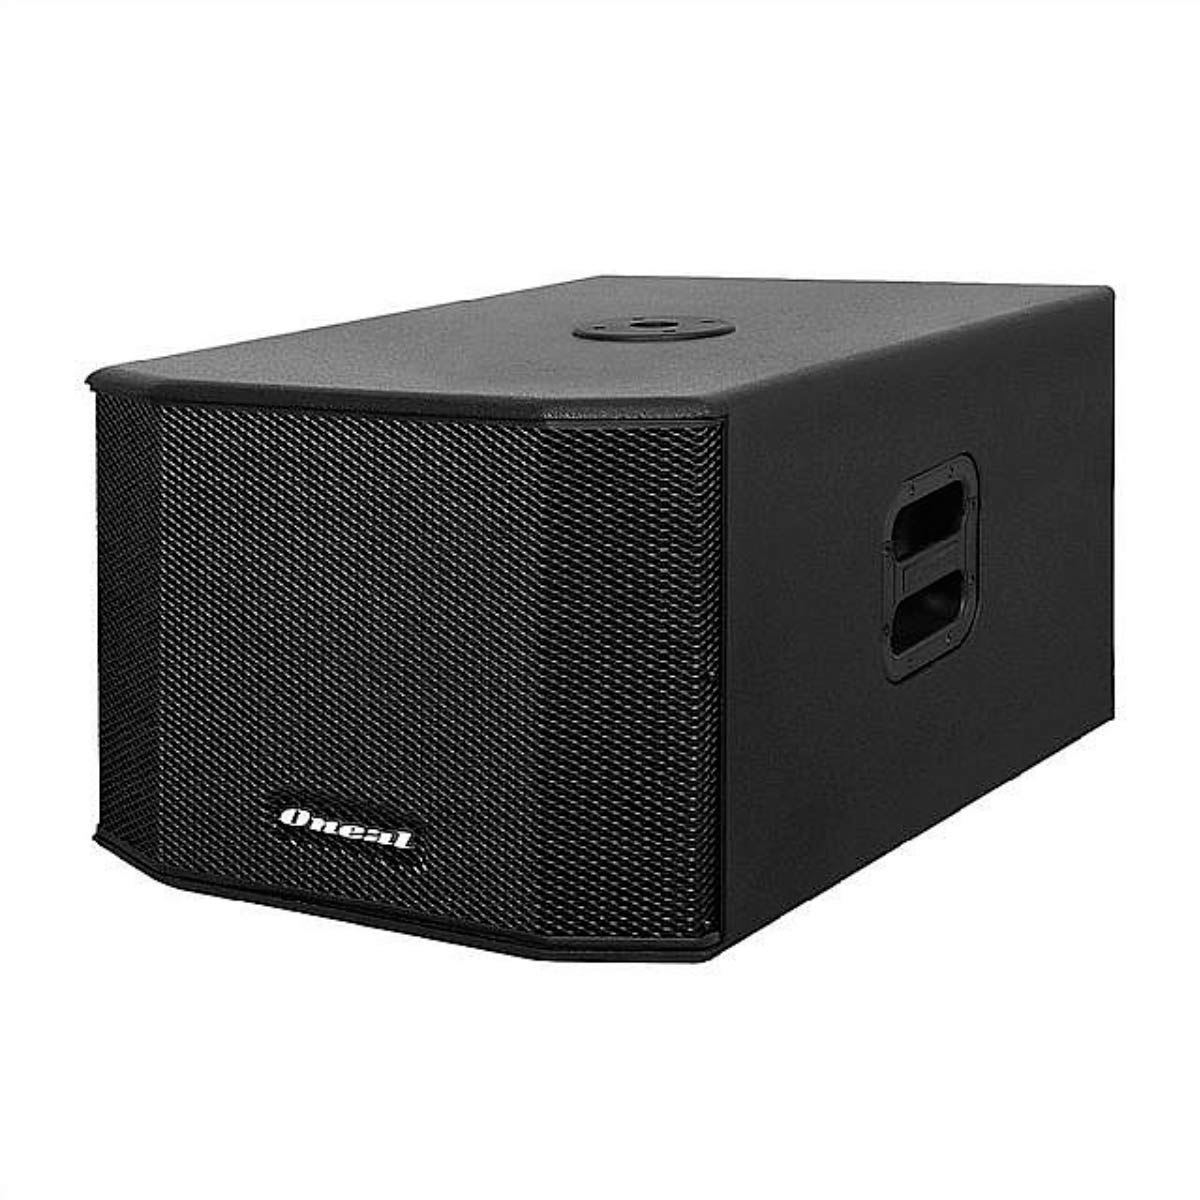 Subwoofer Ativo Fal 15 Pol 1000W - OPSB 2400 Oneal